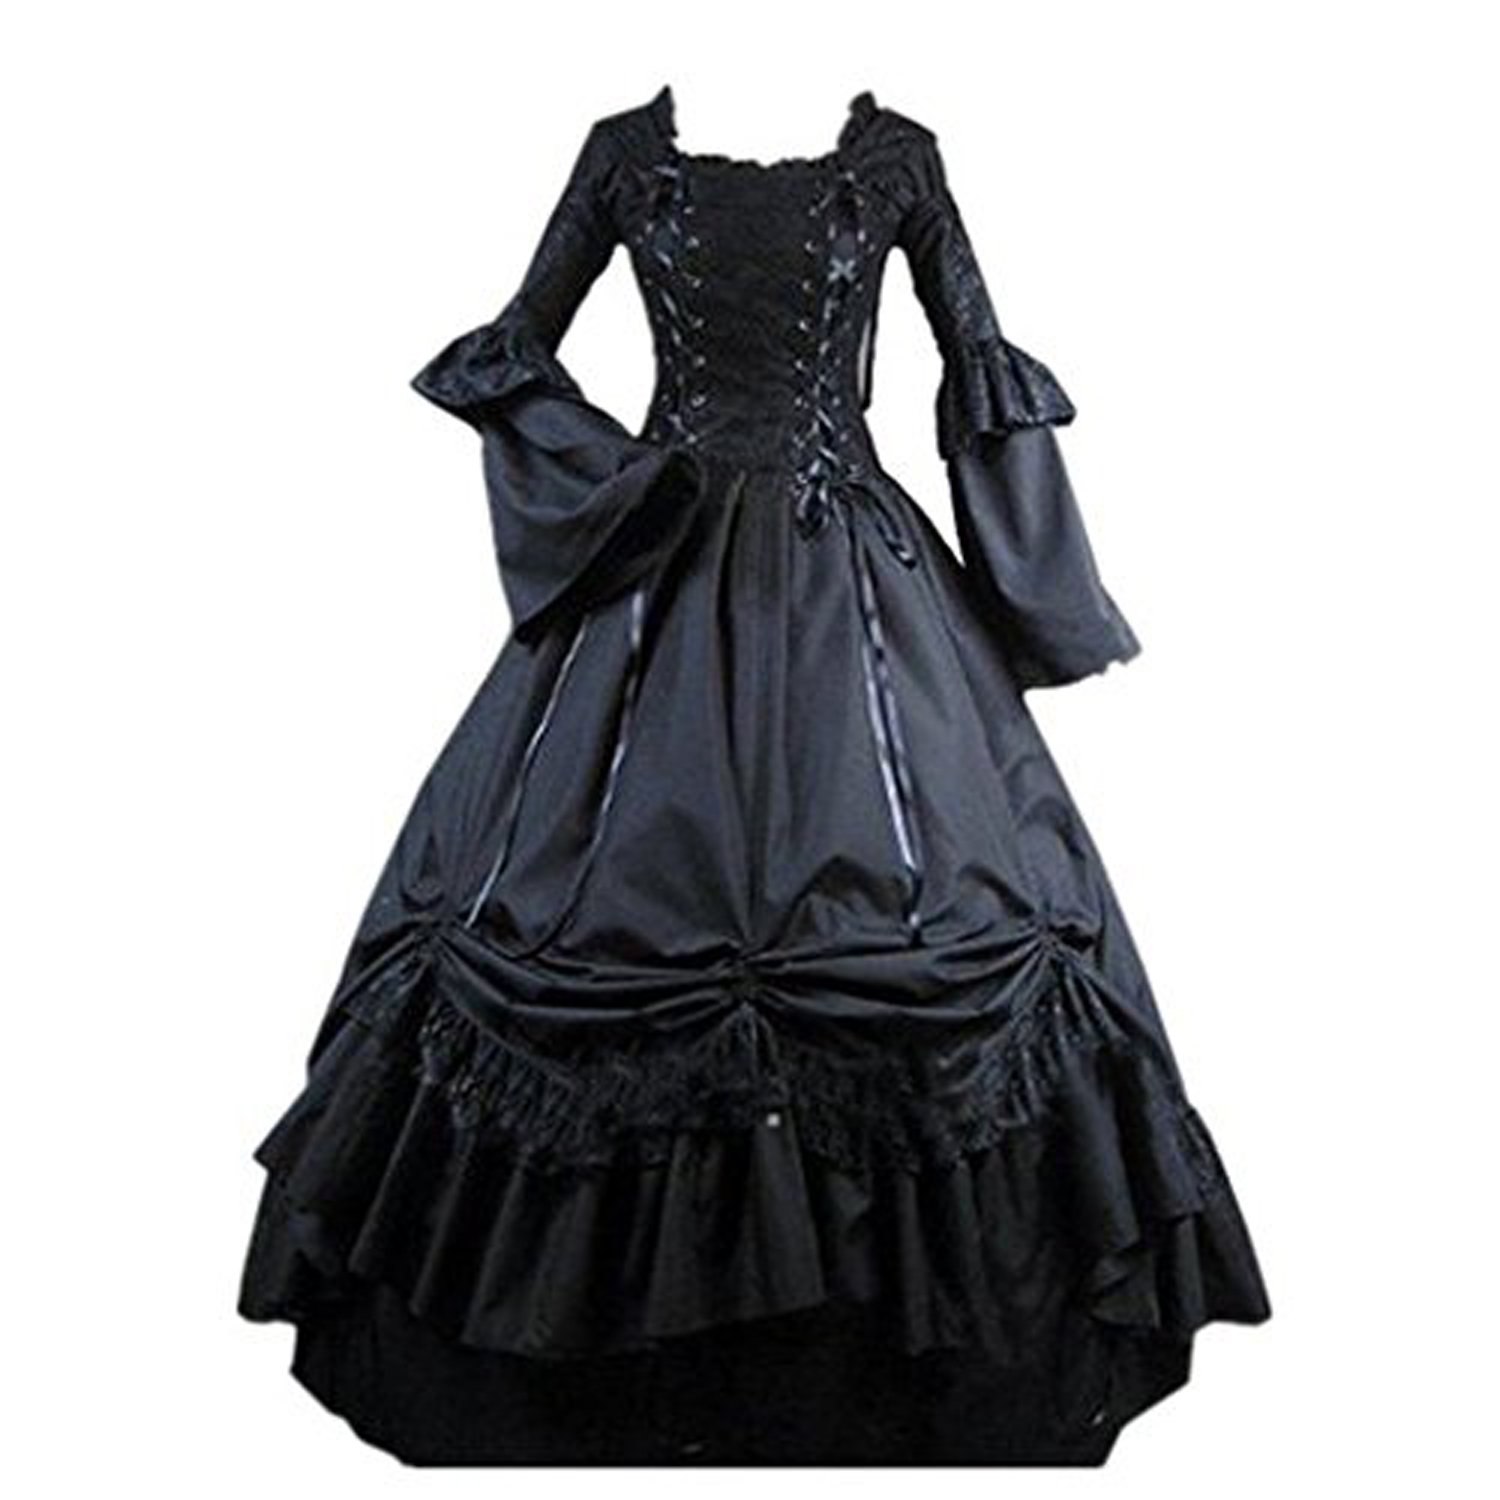 Amazon.com: Fantasy_Outlet Black Square Collar Gothic Victorian Prom ...